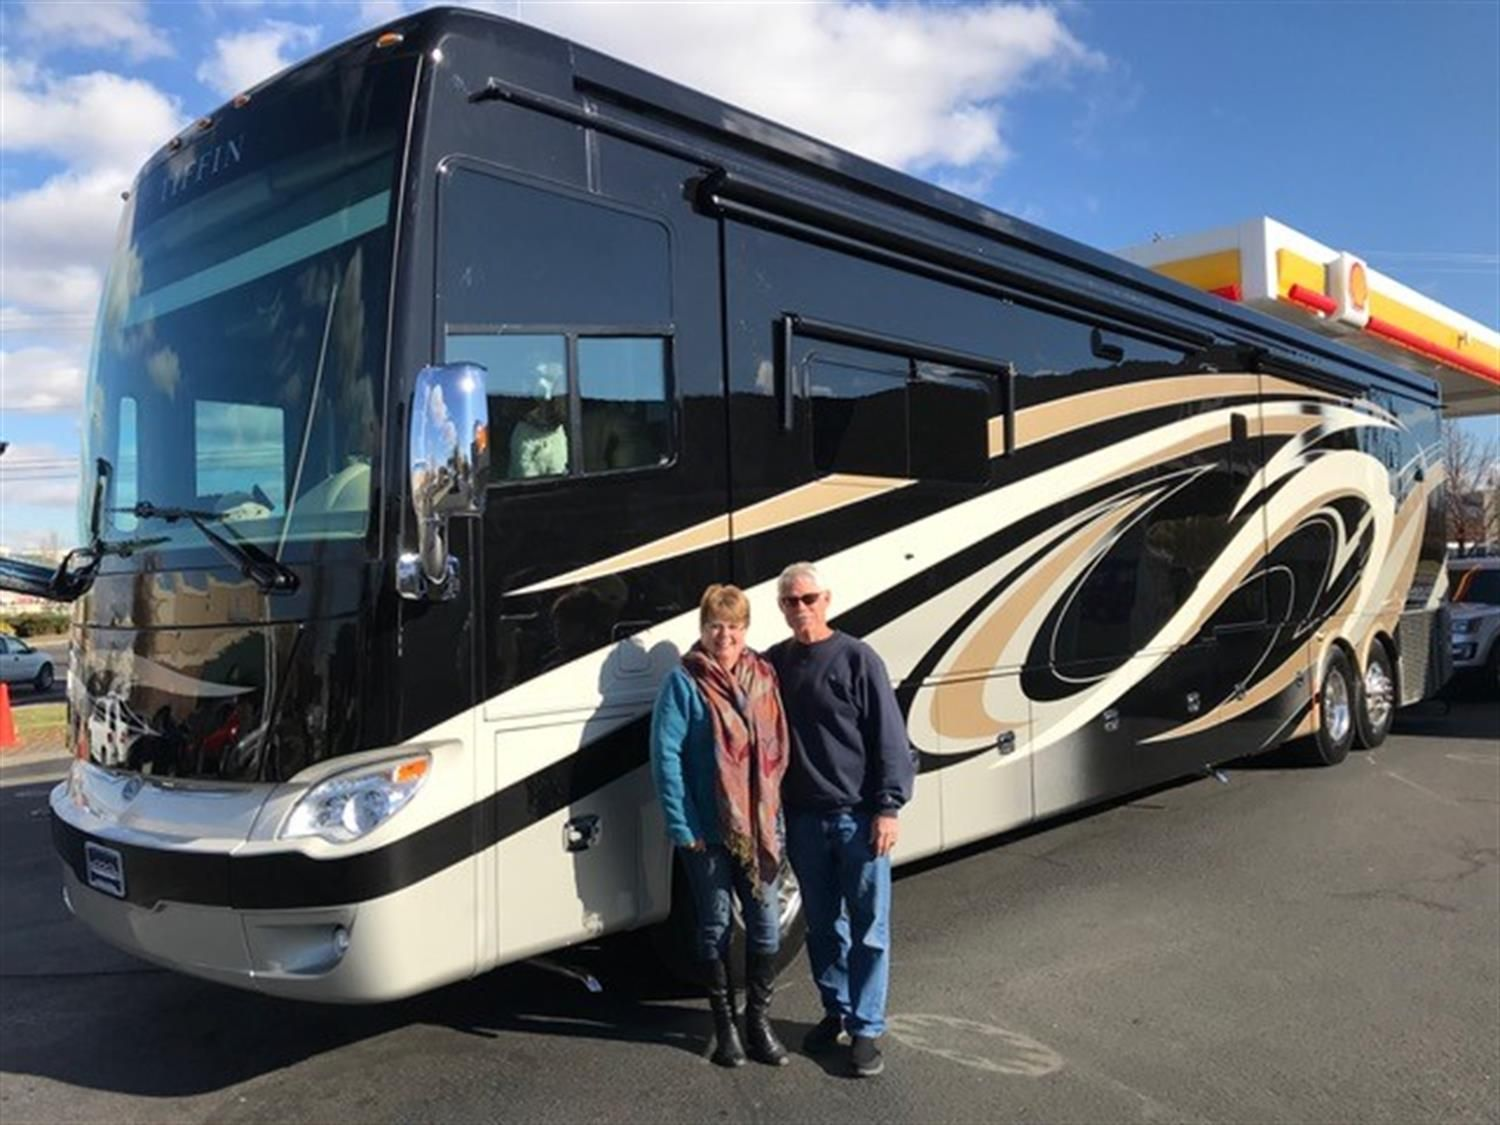 BOB AND PAM, congratulations on your new 2018 TIFFIN ALLEGRO BUS